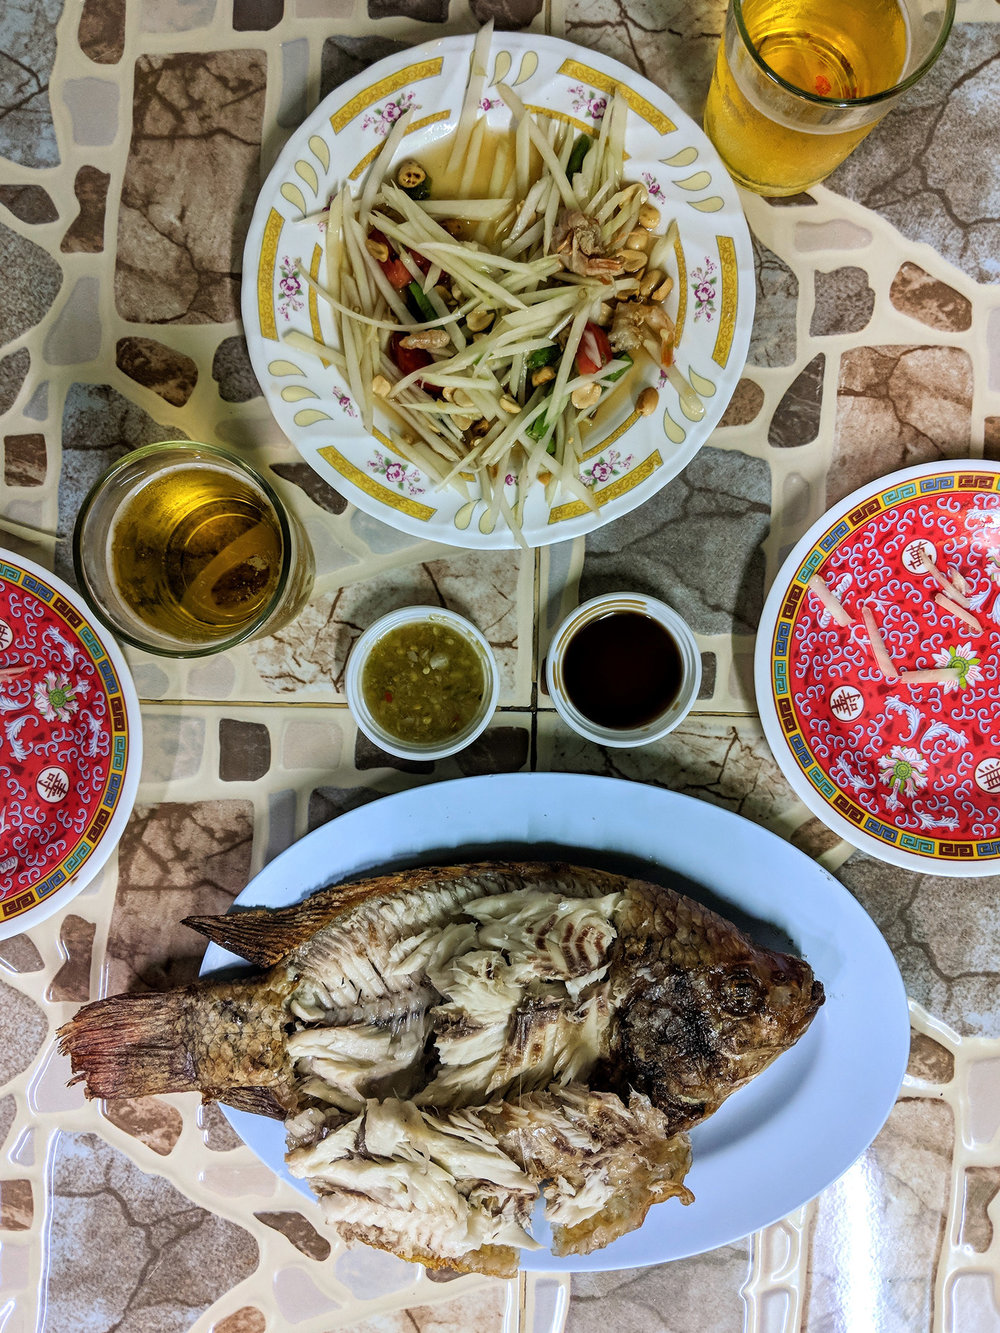 Papaya Salad and Grilled Fish at Lert Ros